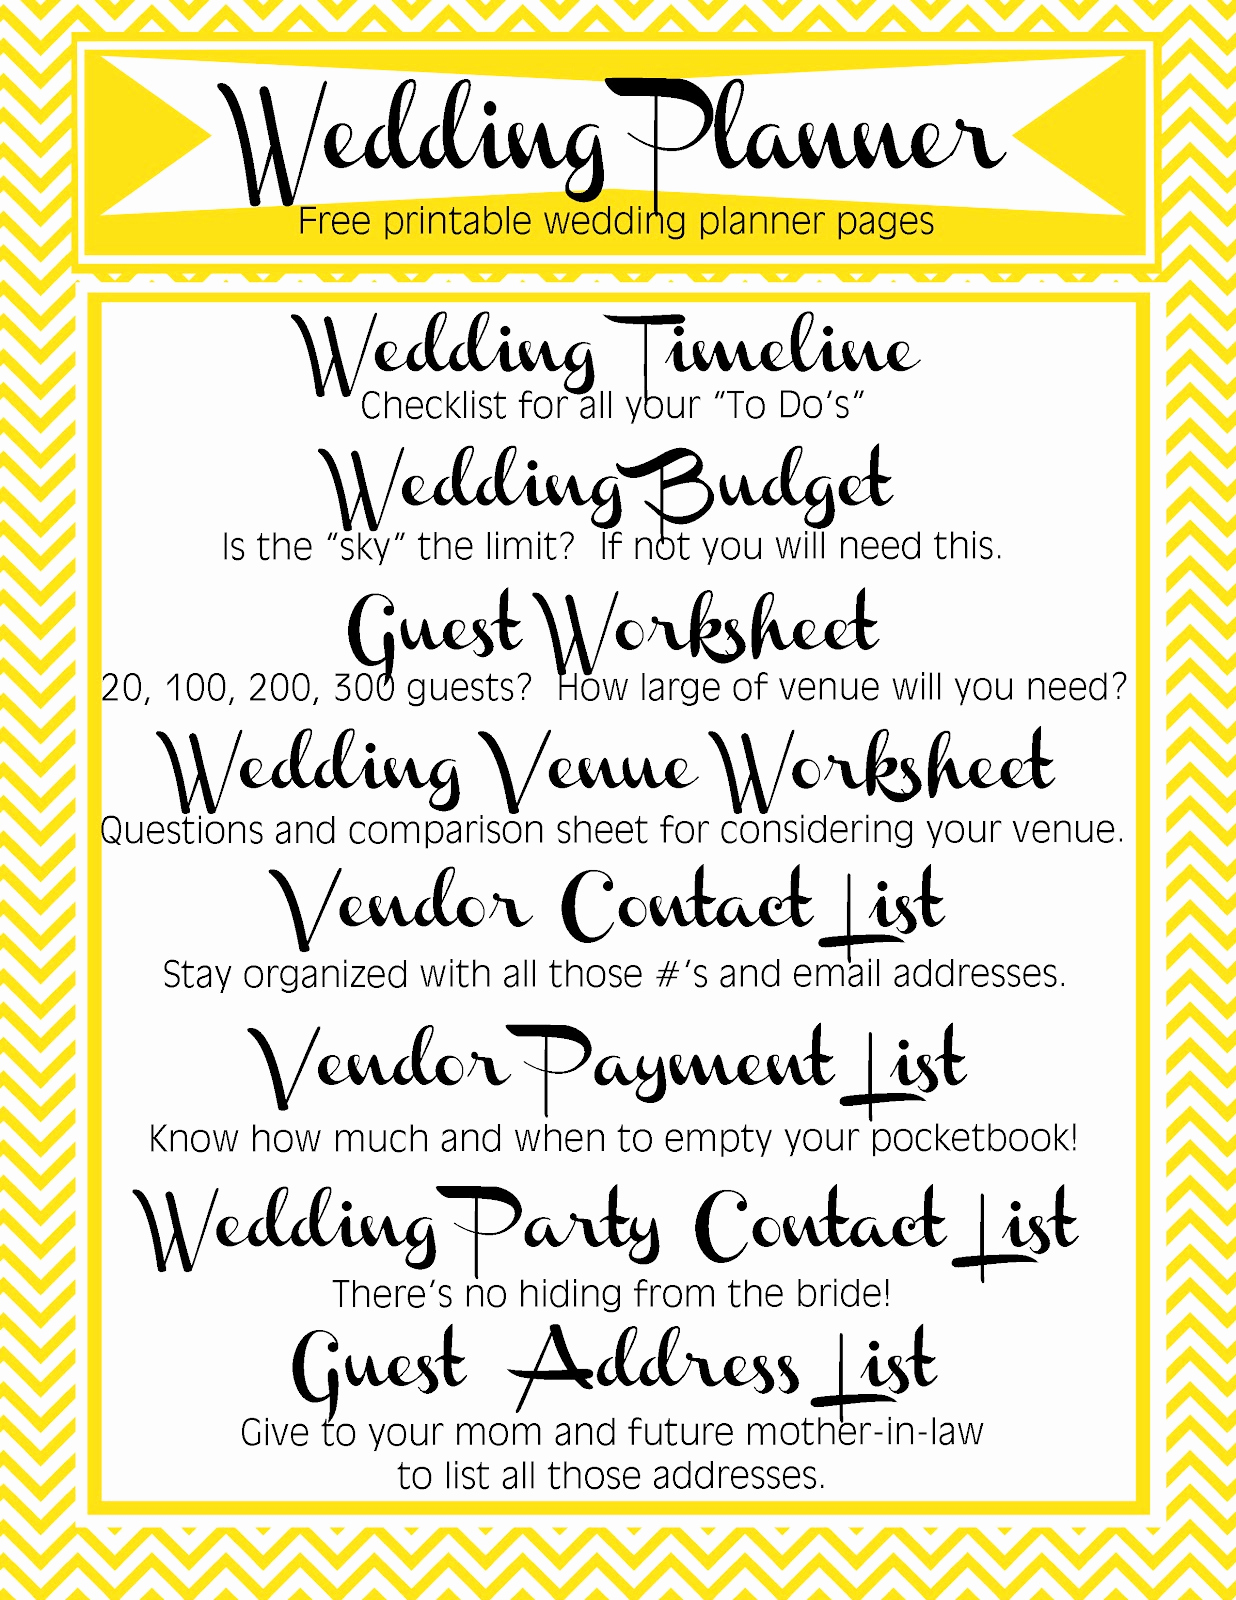 Wedding Planning Timeline Template Awesome Applying the Wedding Planning Templates